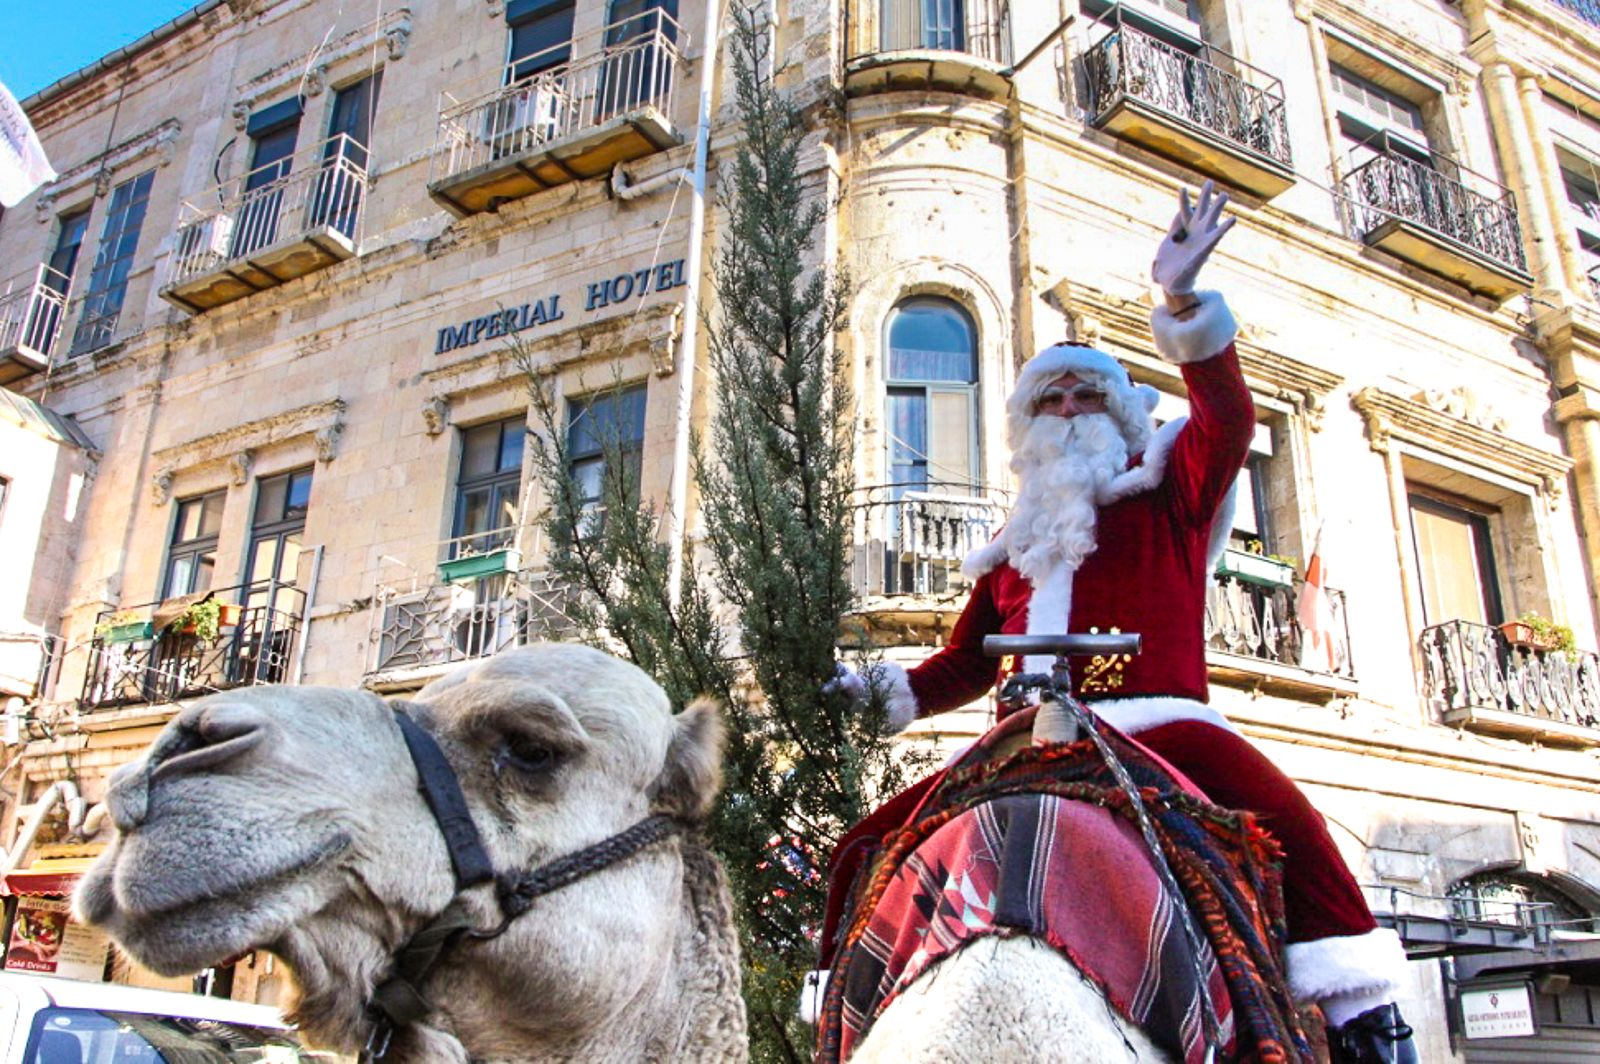 Santa Claus and his trusty camel help distribute free Christmas trees in Jerusalem's Old City on December 20, 2016